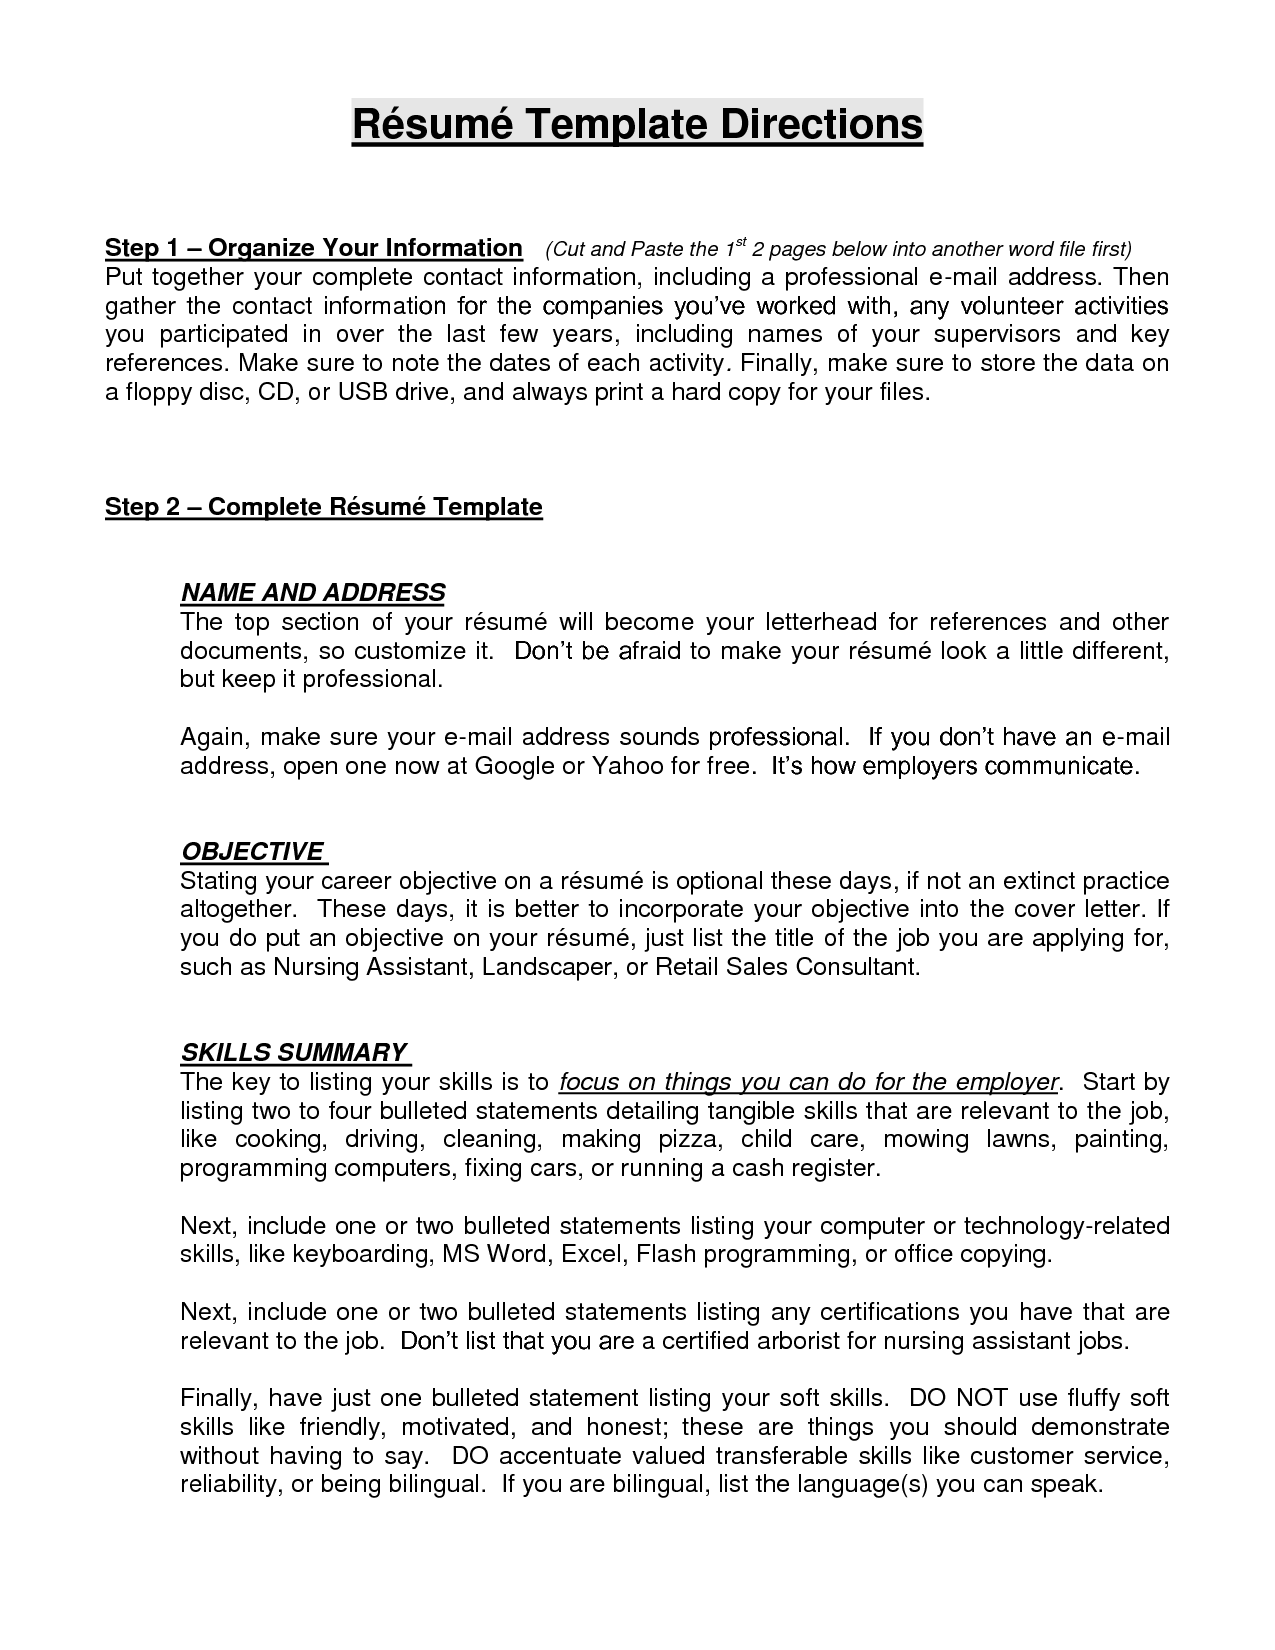 objective and skills resume objective statement great resume objective statements examples - Whats A Good Resume Objective